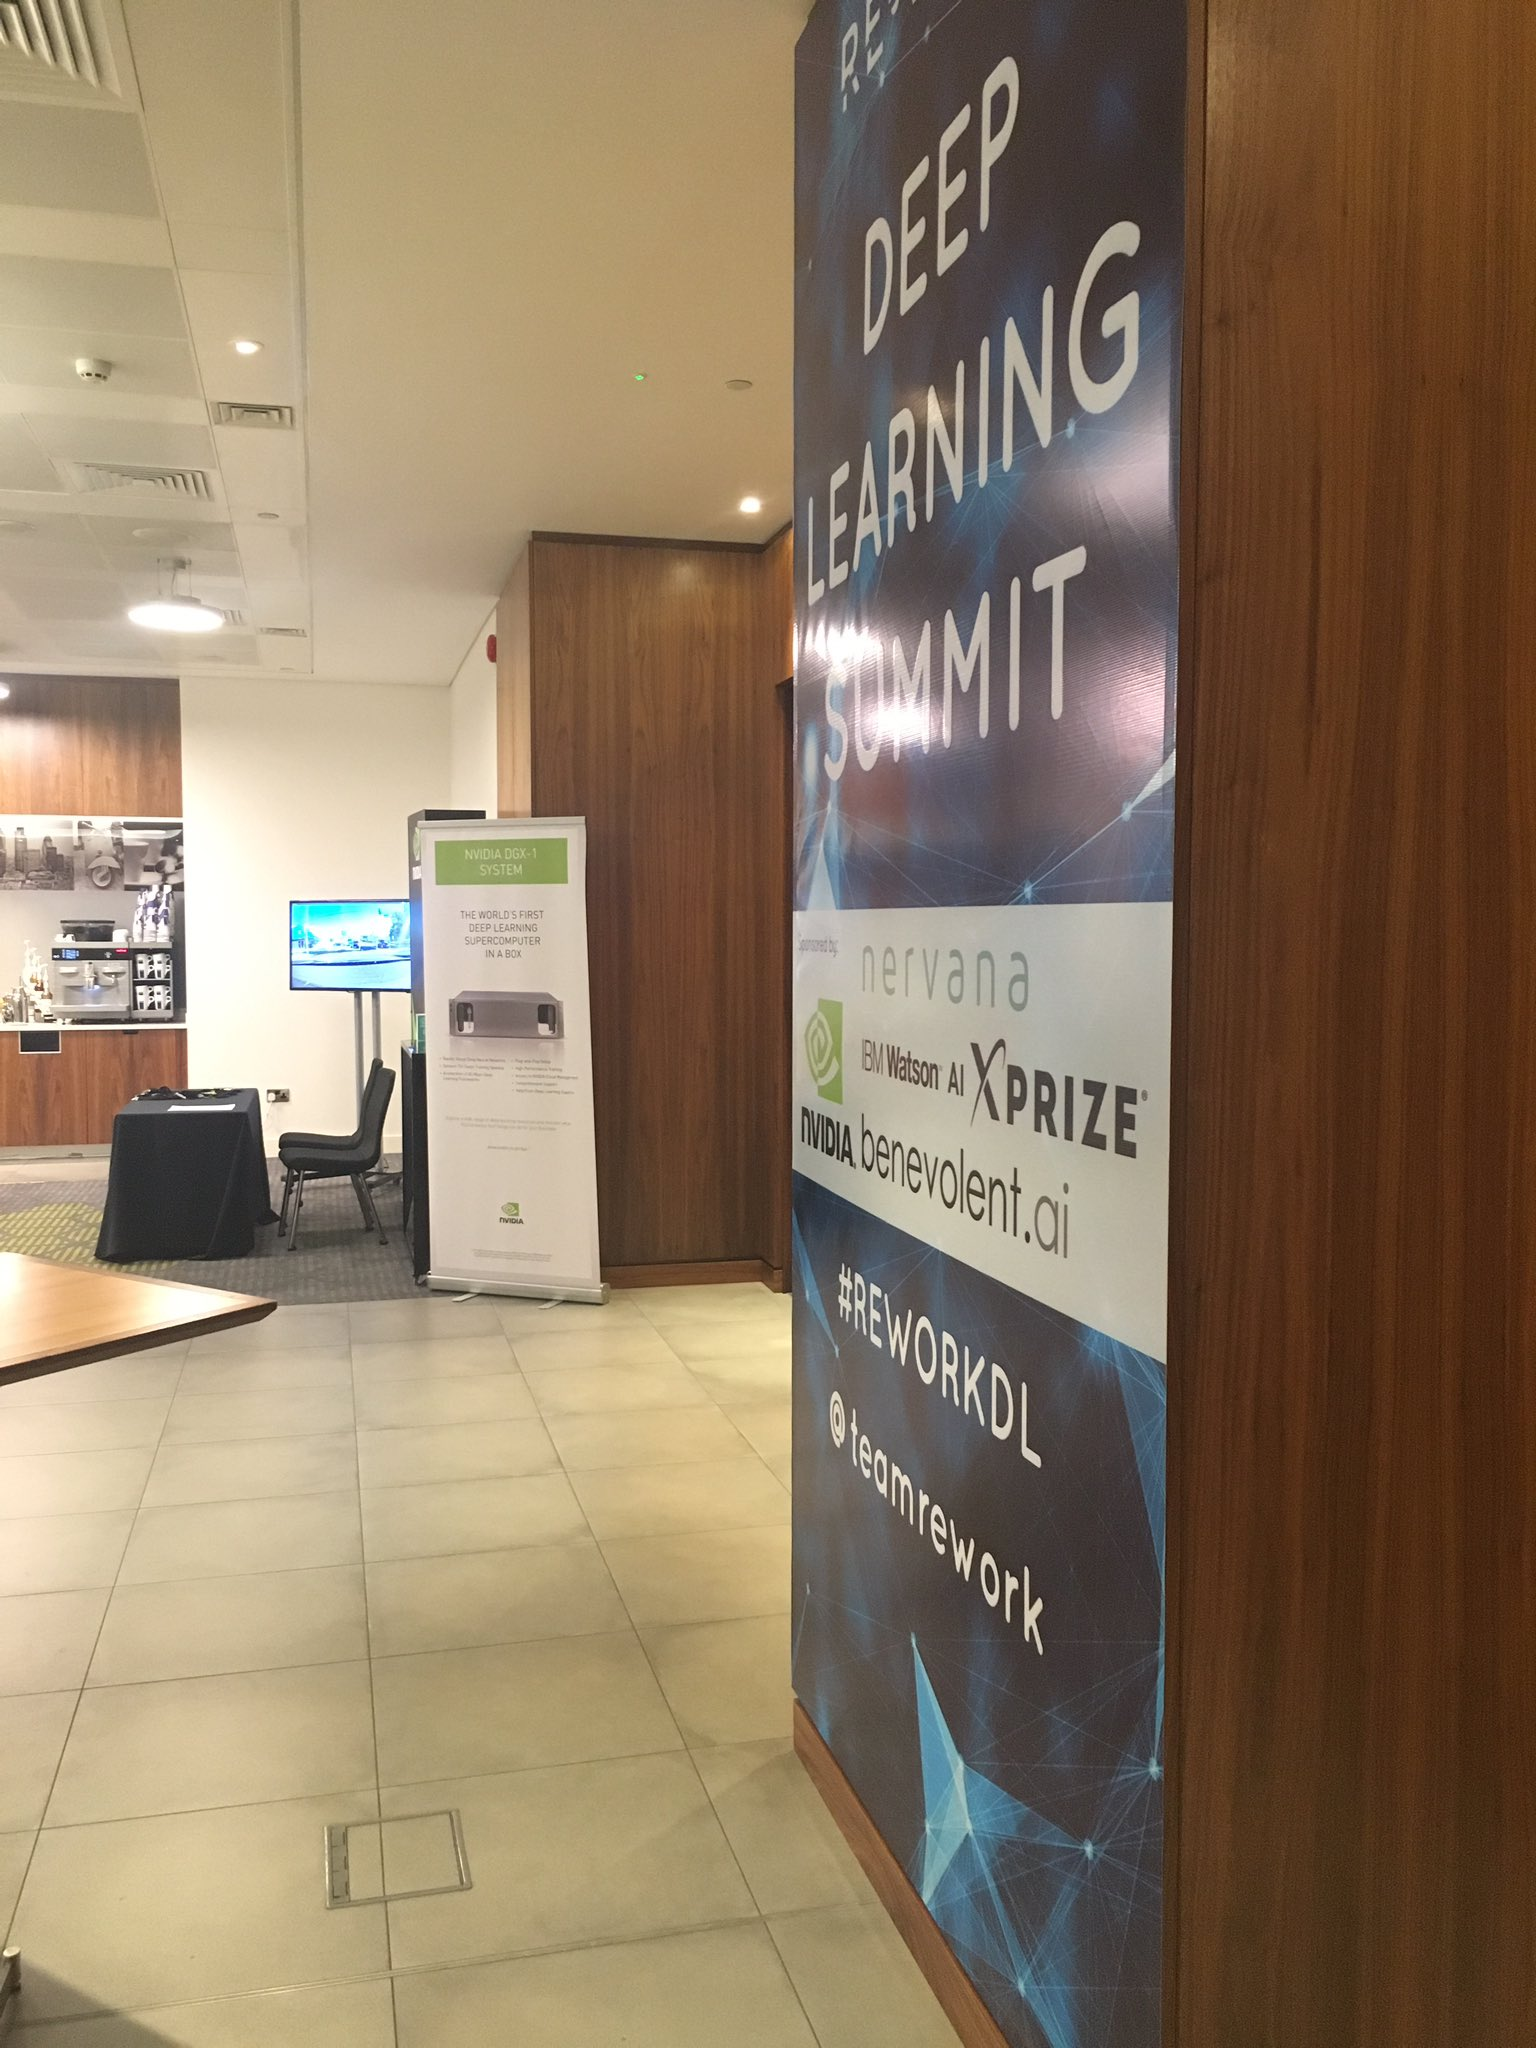 Best #reworkDL event in London yet! Congratulations @teamrework - see you all soon! #GPUs #DeepLearning #AI https://t.co/NGXucTNfrS